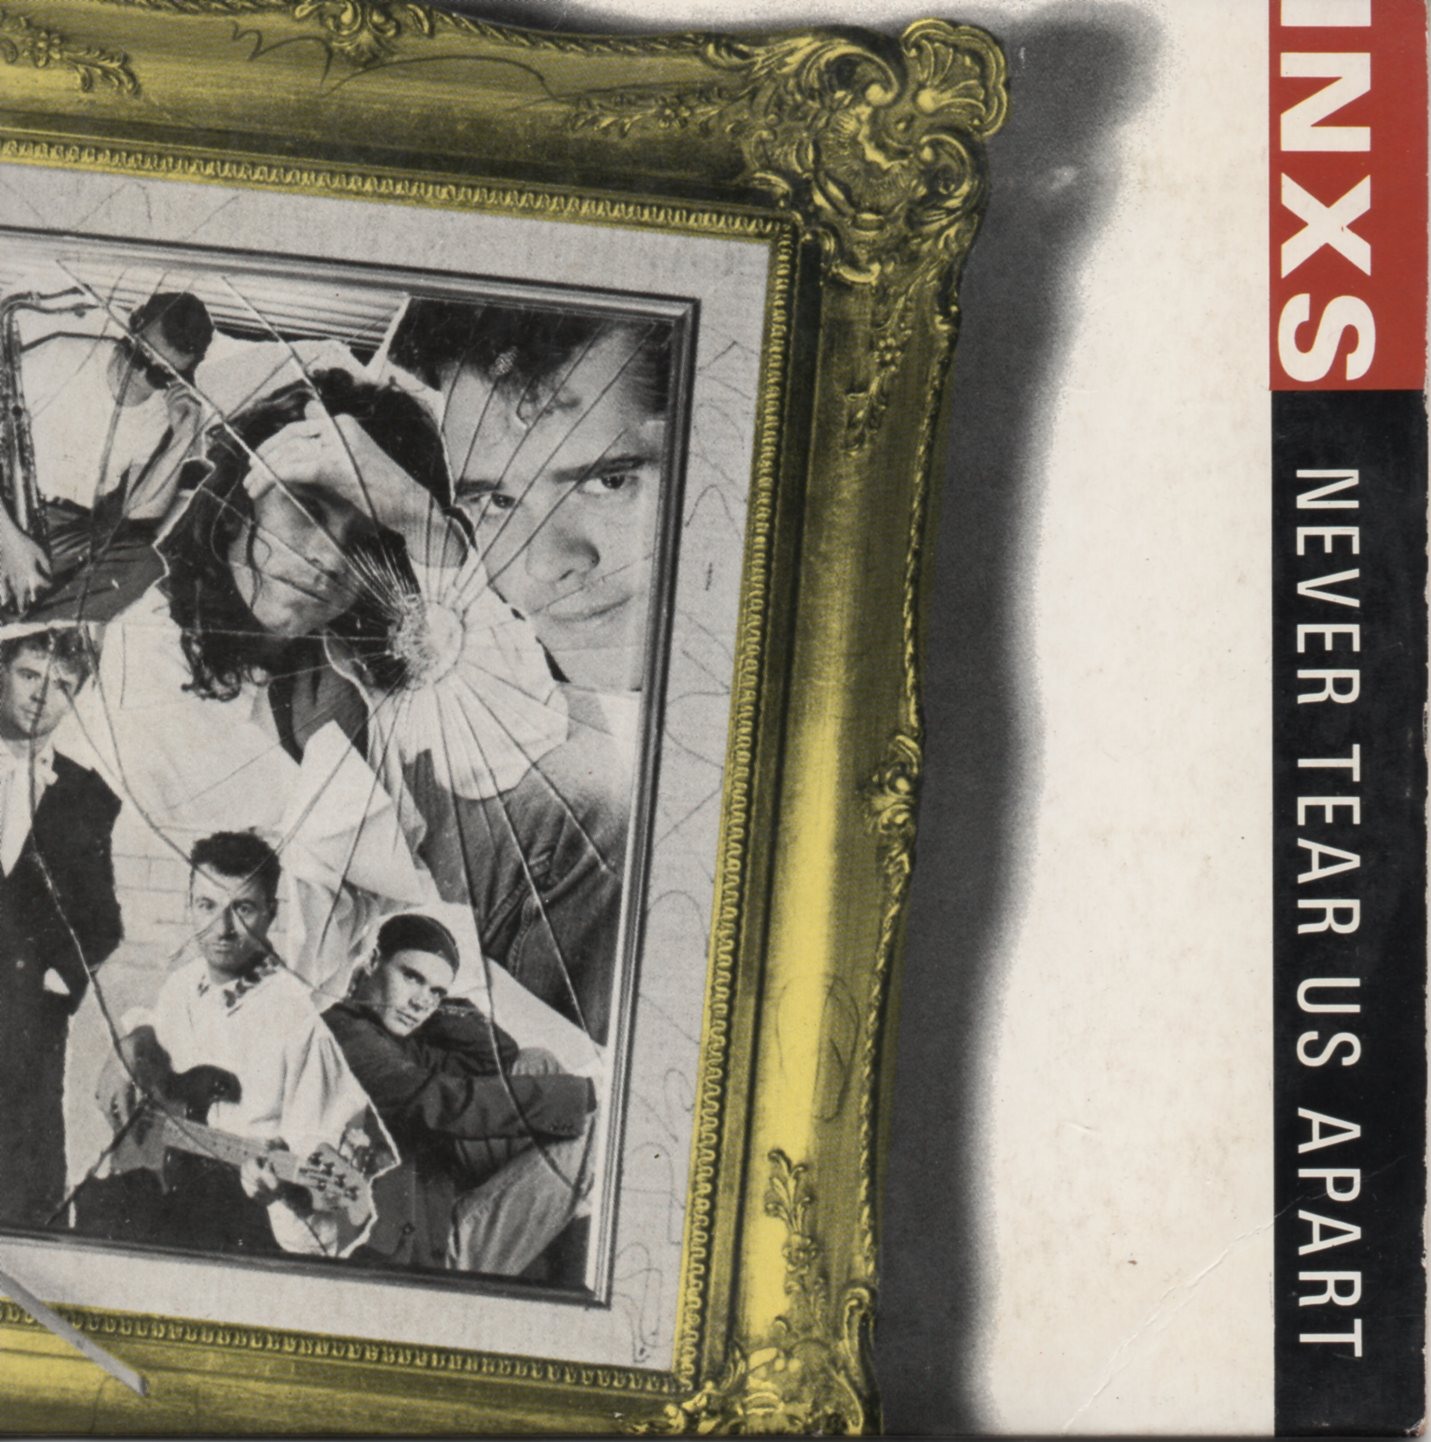 INXS - Never tear us apart 4-Track CARD SLEEVE - CD single